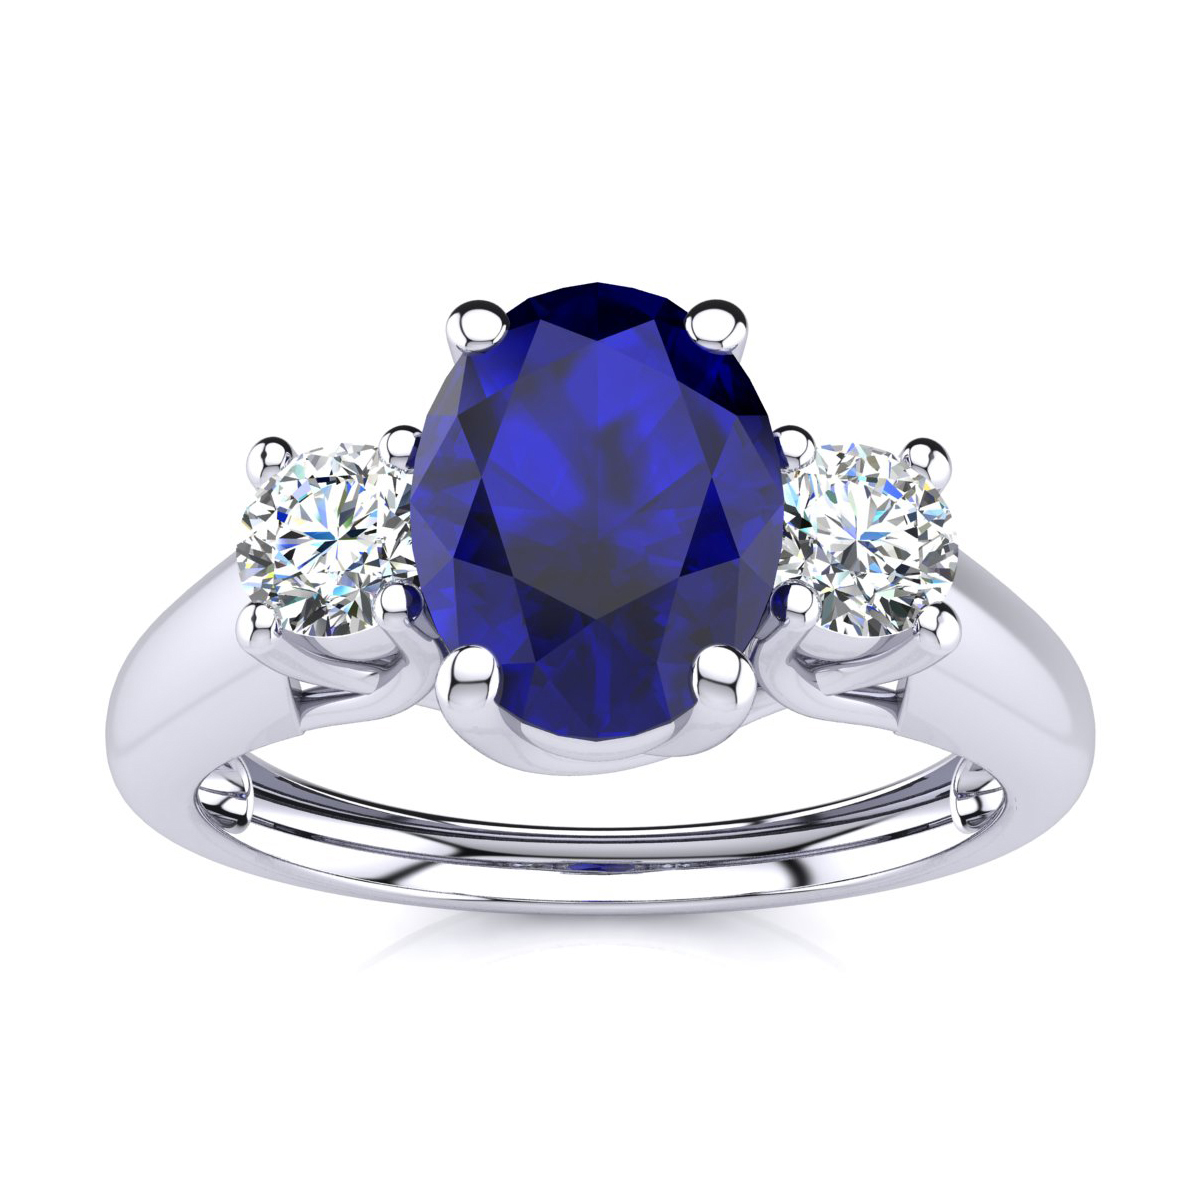 ring and are store cleared the fashion working most days payments holidays jewelry men victoria cz except when diamond public items unexpected things sapphire within product wieck shipped